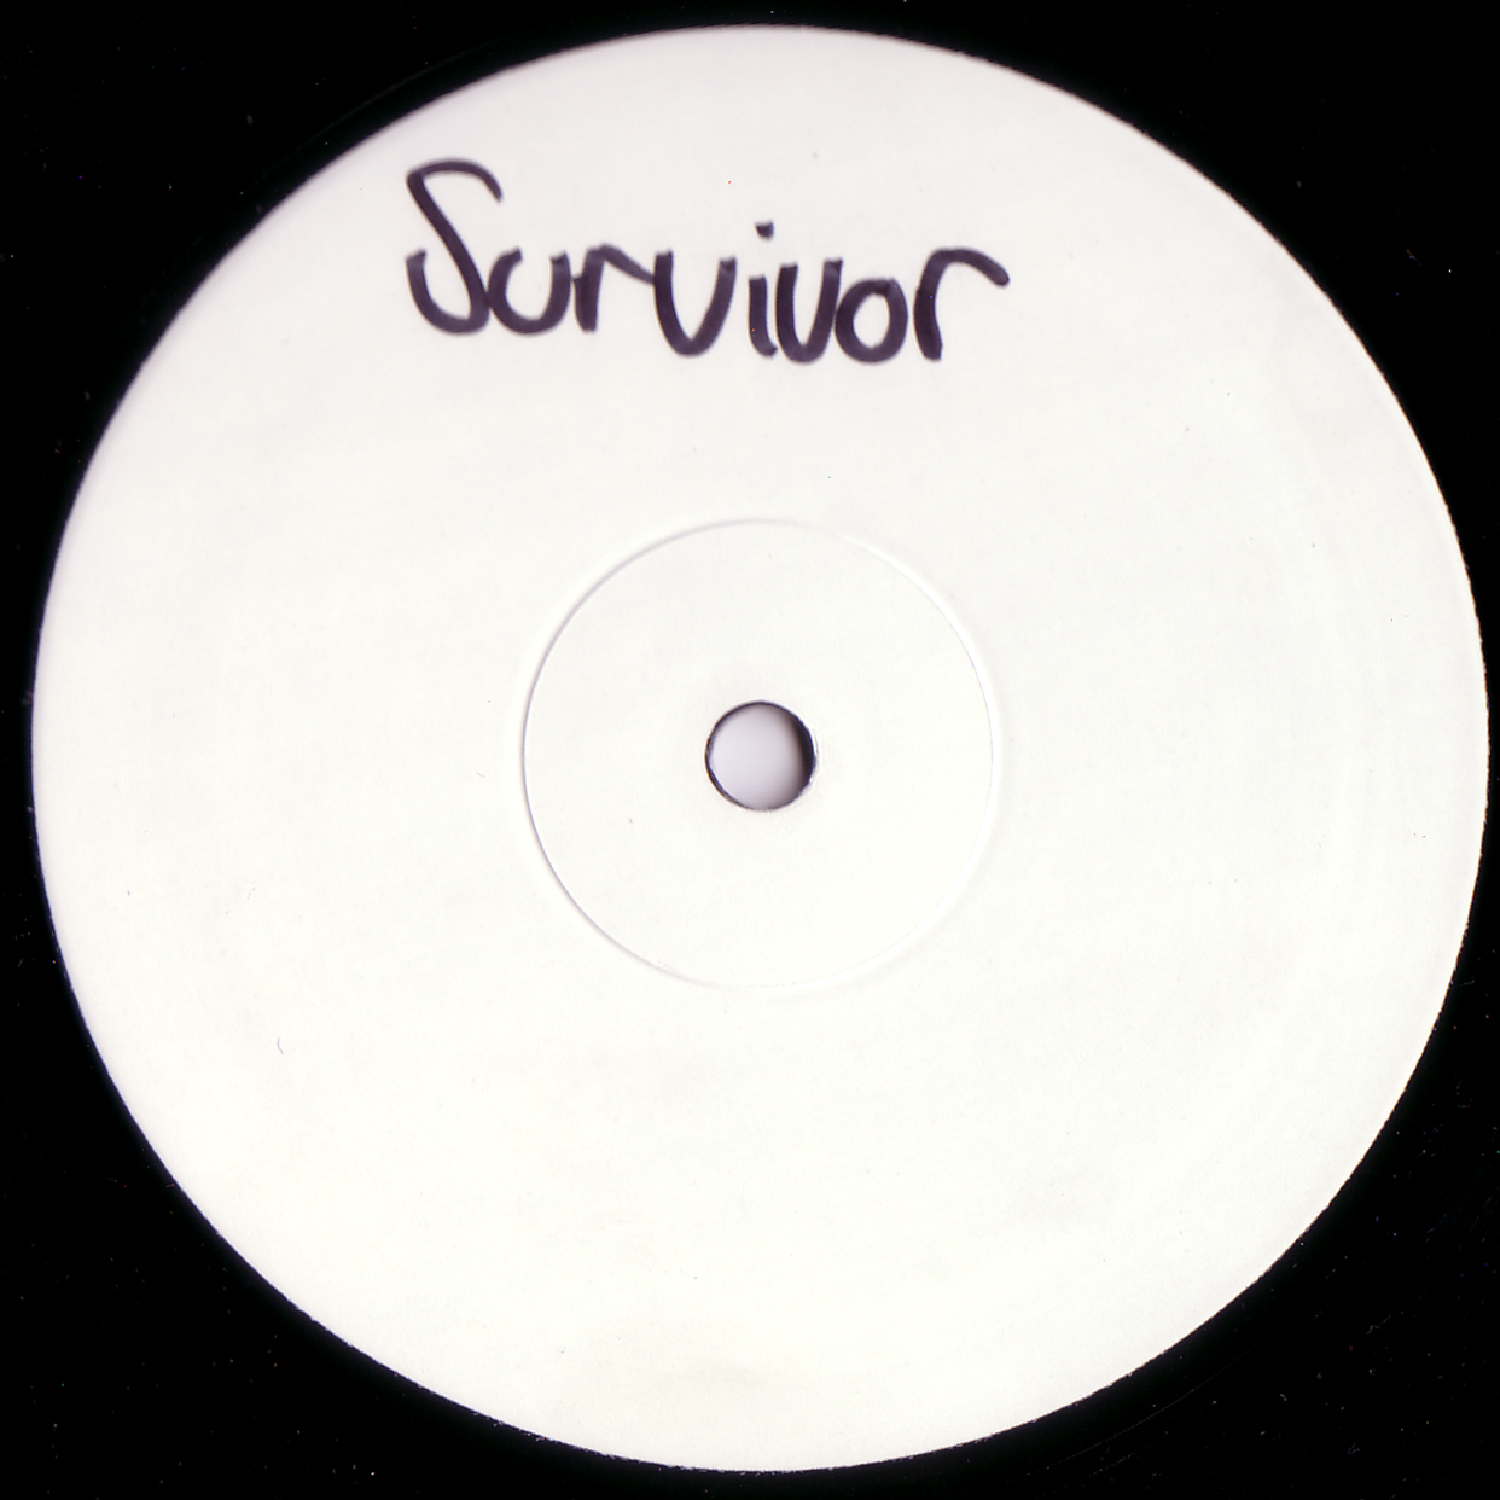 [INFL018] Idealz And Hired Gun - Survivor (Digital Only)